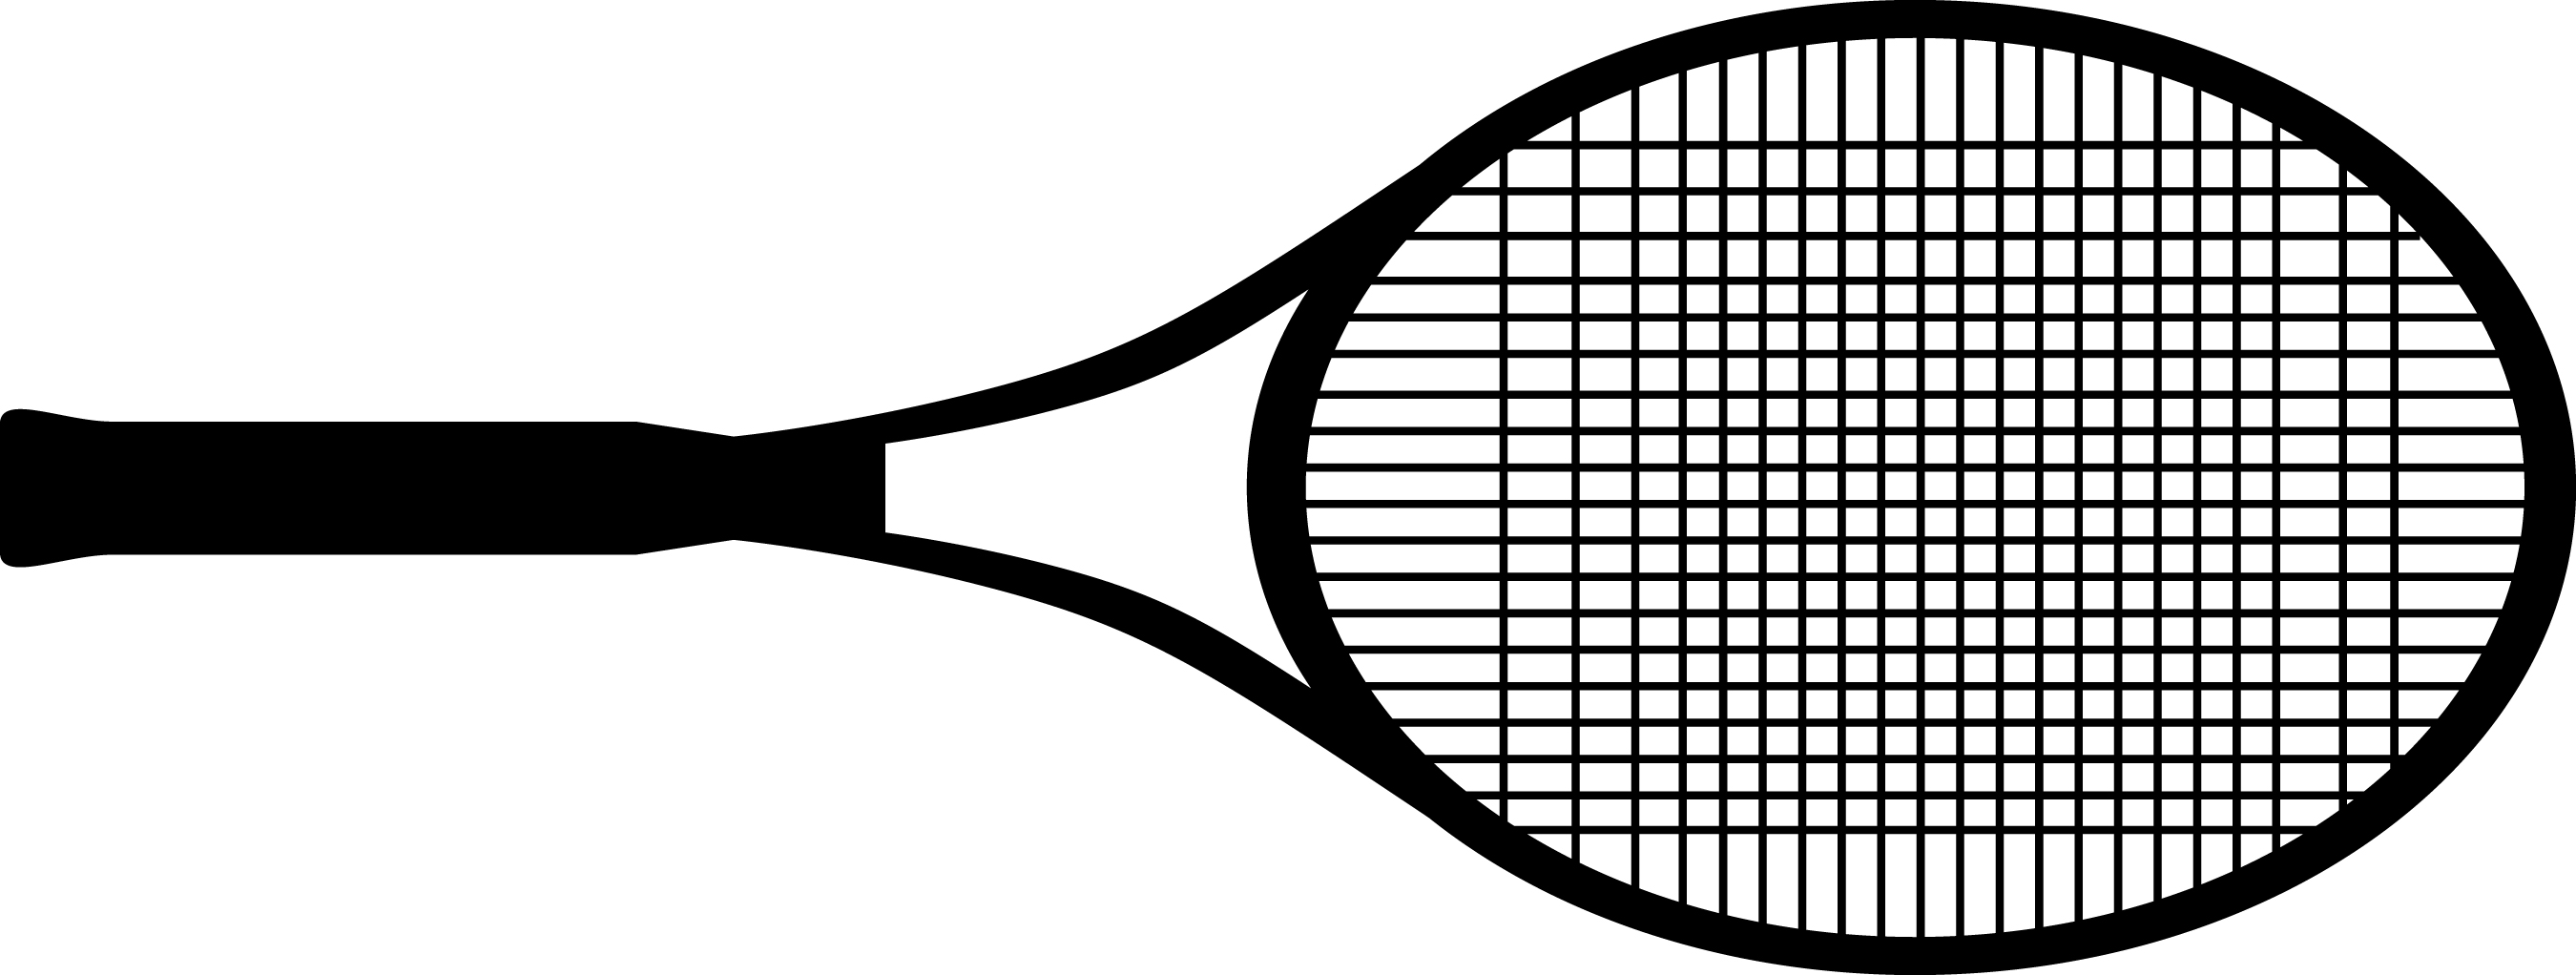 Racket clipart lawn tennis. Cilpart merry recommendations racquet svg library stock